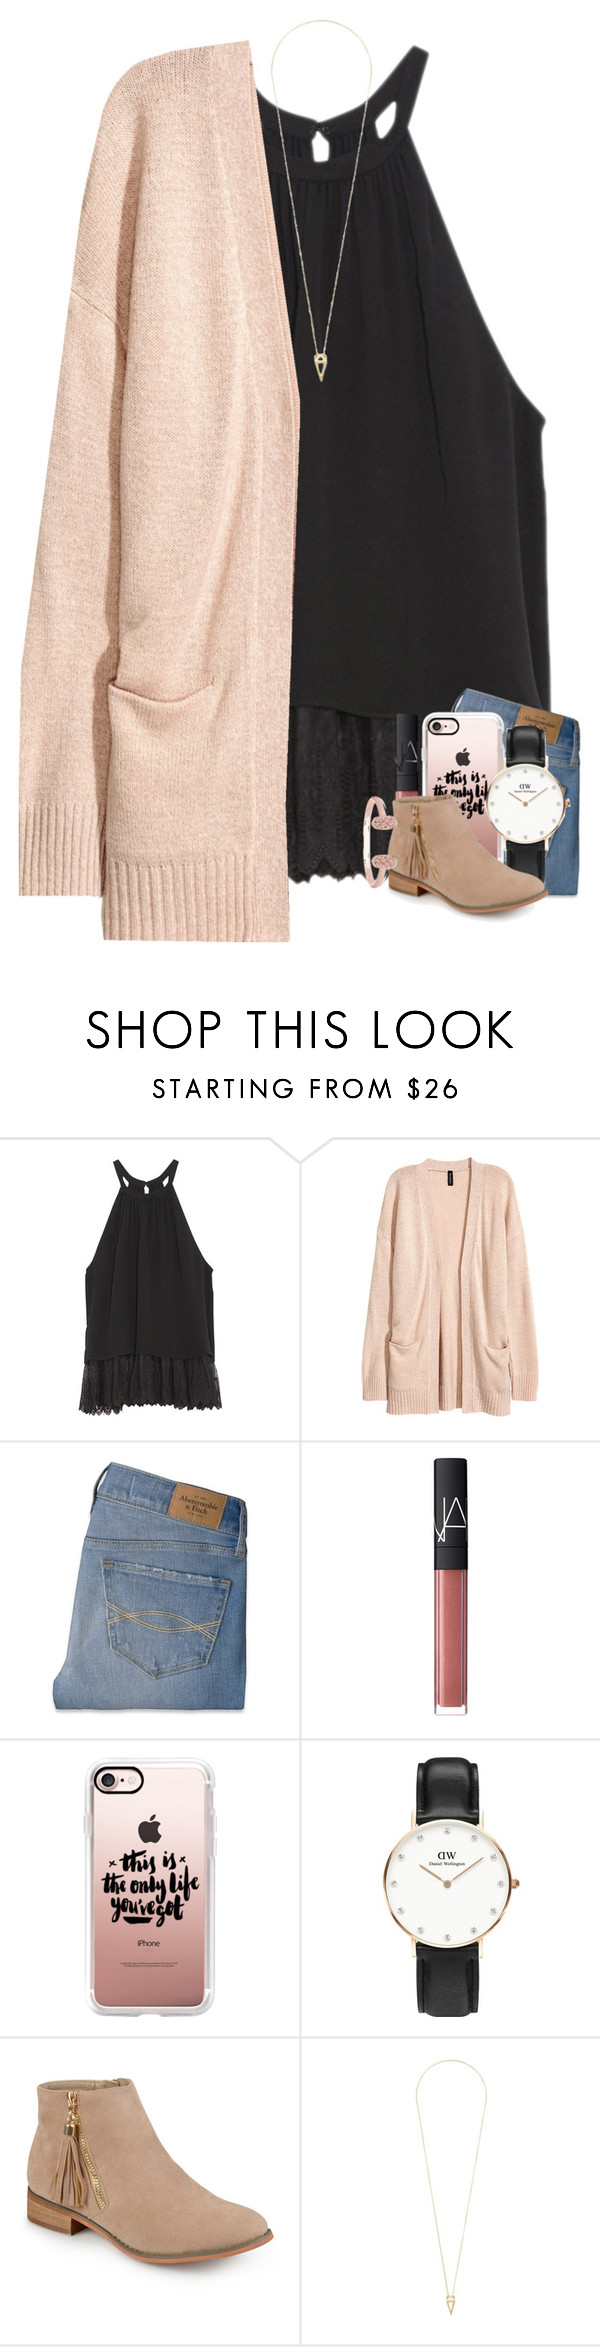 """listening to alessia cara"" by if-you-like-midnight-driving ❤ liked on Polyvore featuring OTTE, Abercrombie & Fitch, NARS Cosmetics, Casetify, Daniel Wellington, Journee Collection, Noor Fares and Kendra Scott"